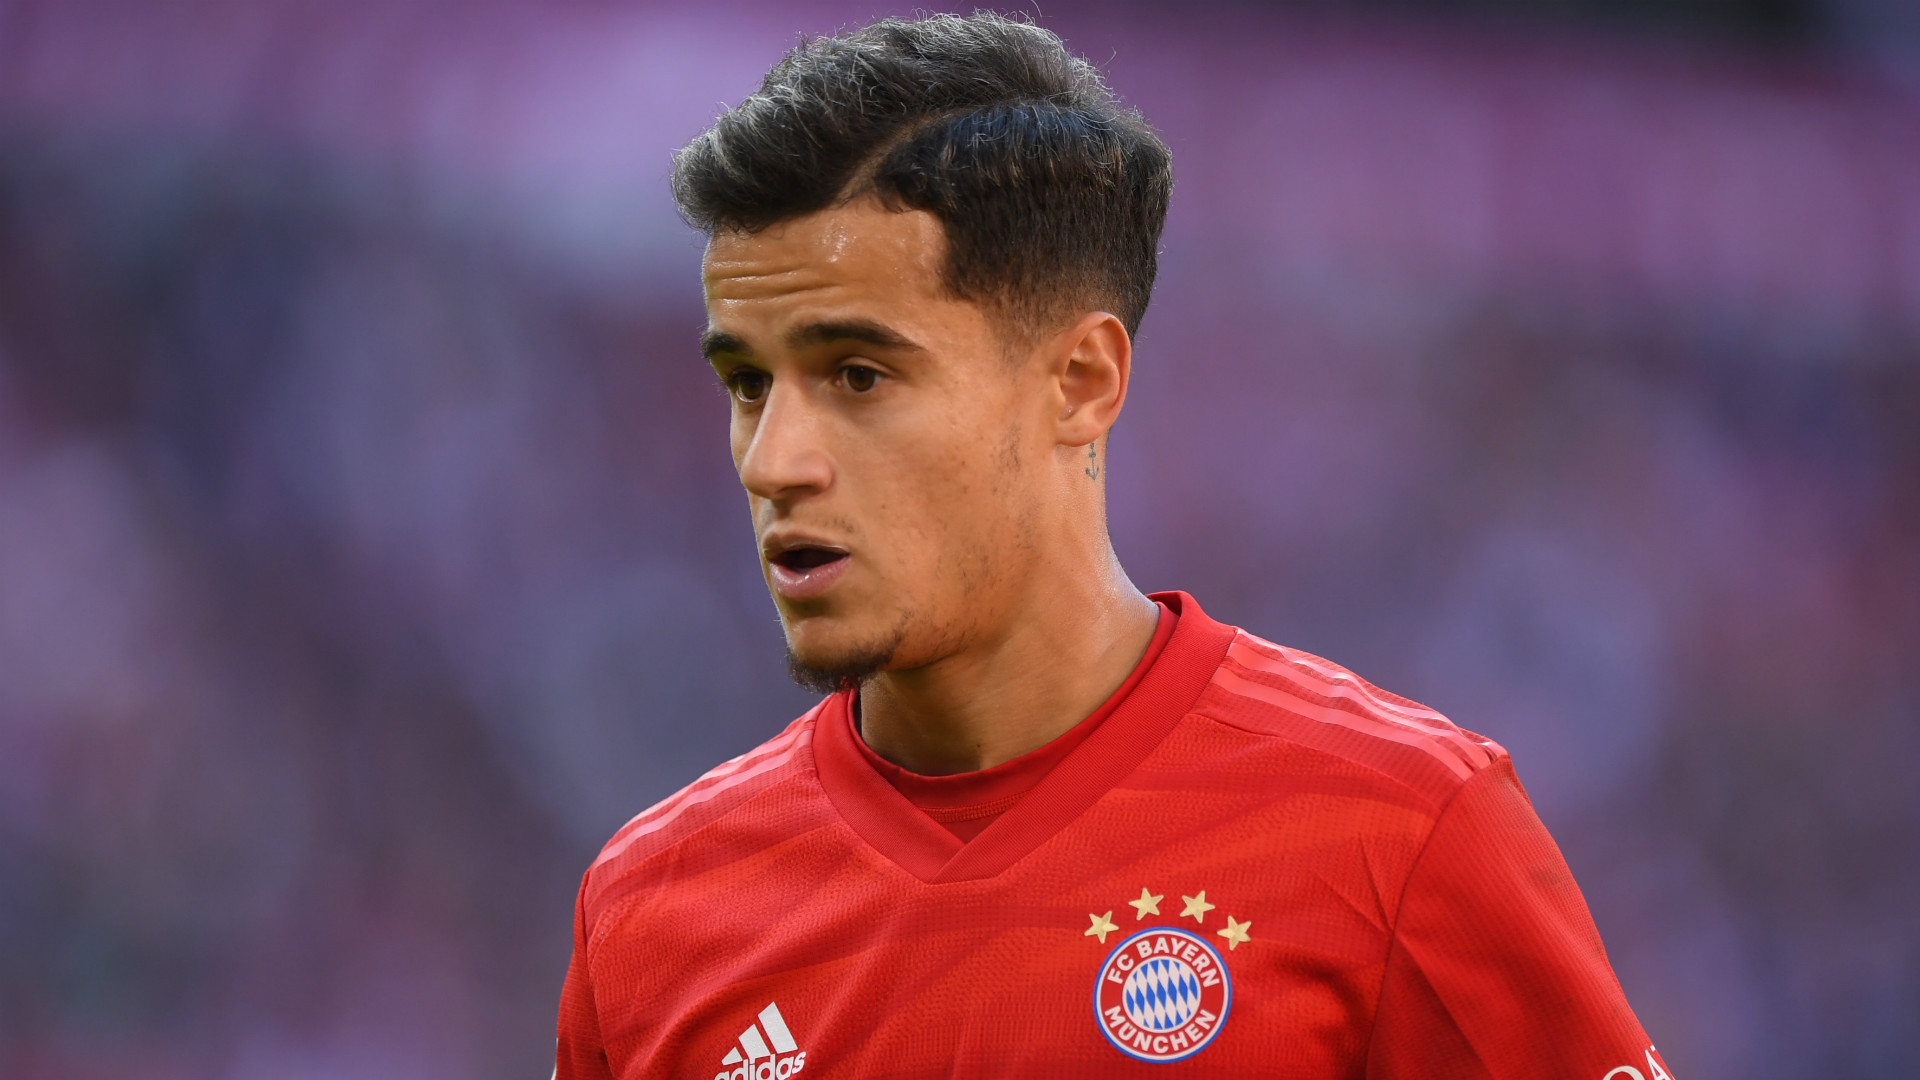 chelsea makes unusual request for coutinho - Bóng Đá